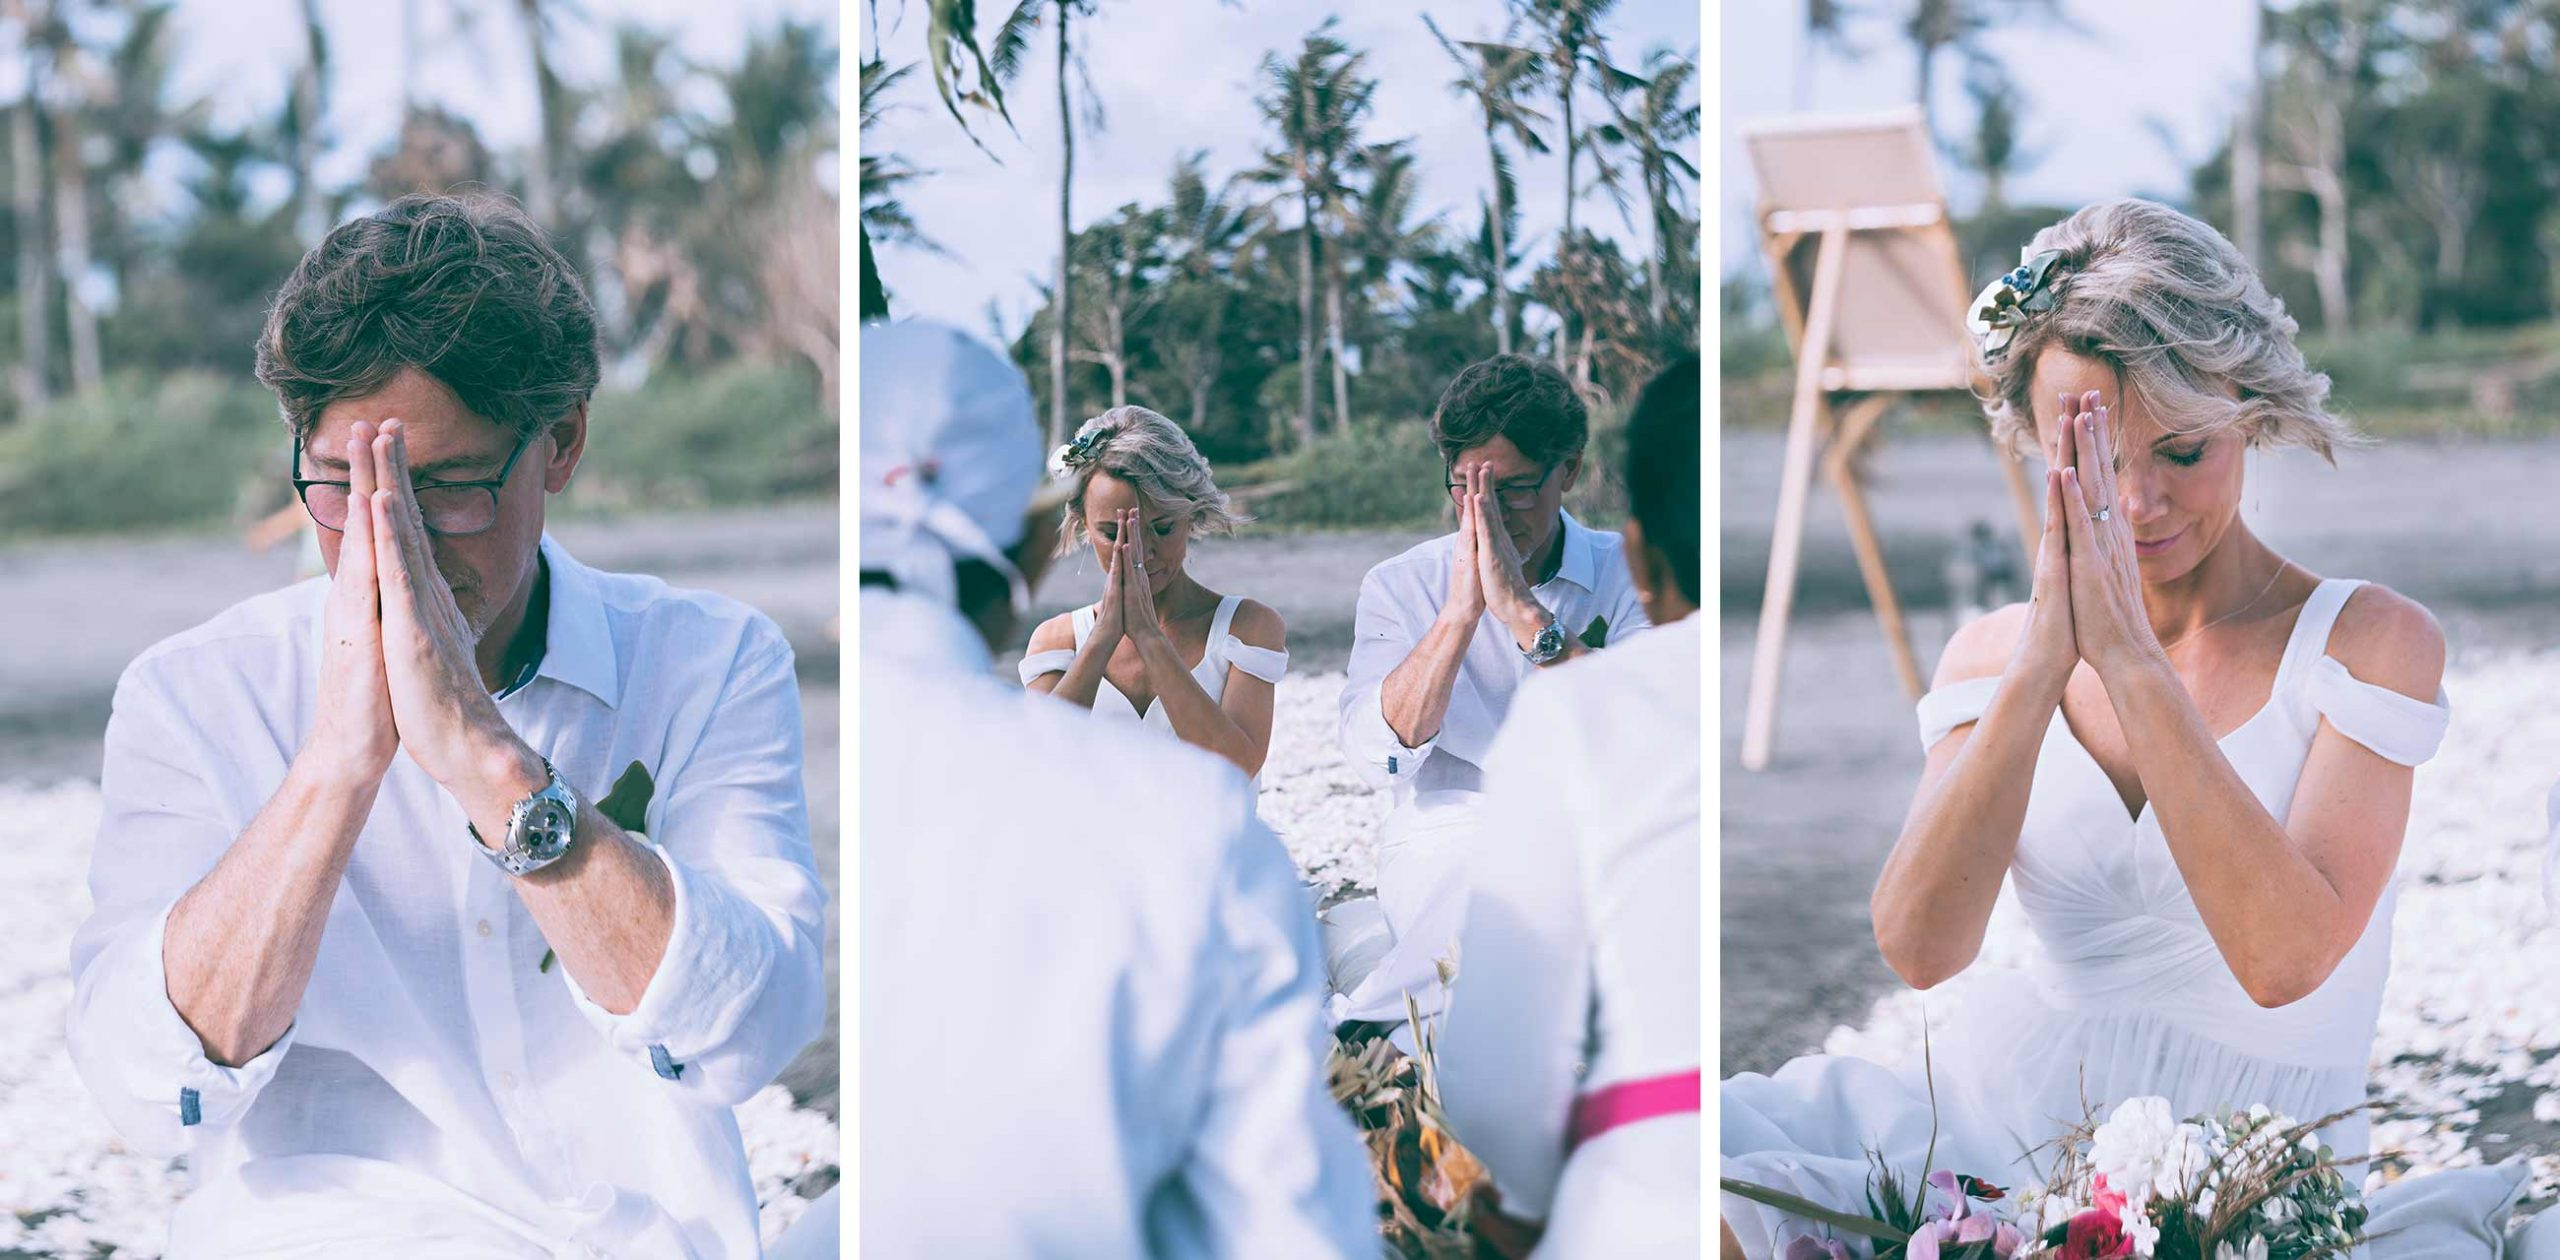 Prayers during a Balinese wedding ceremony